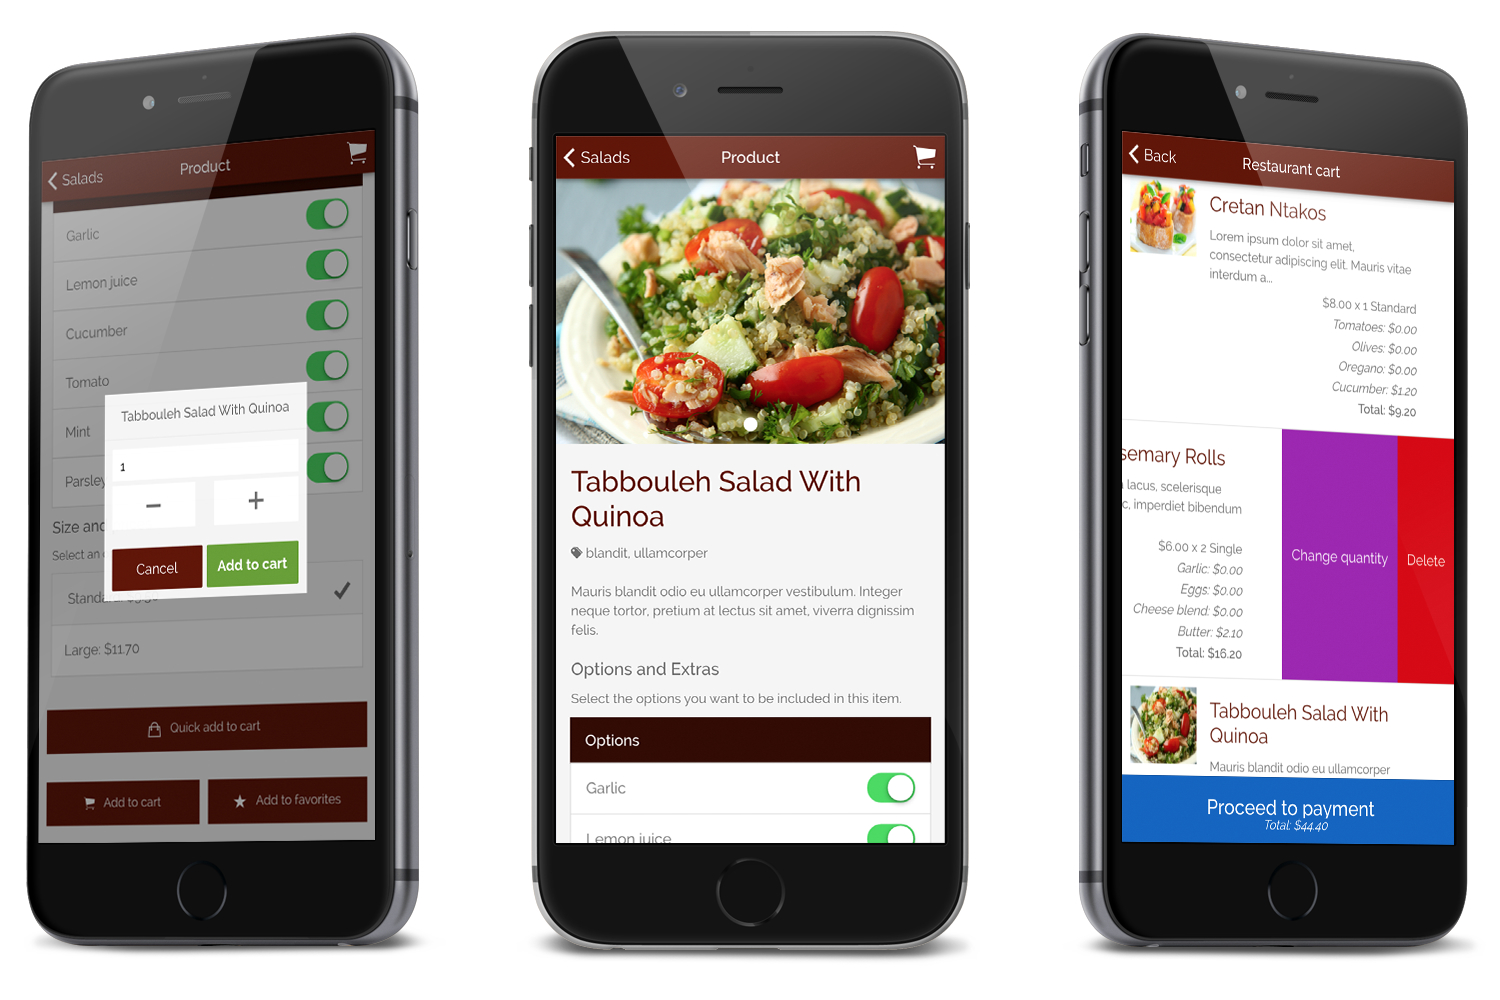 Restaurant Ionic Classy- Full Application with Firebase backend - 7